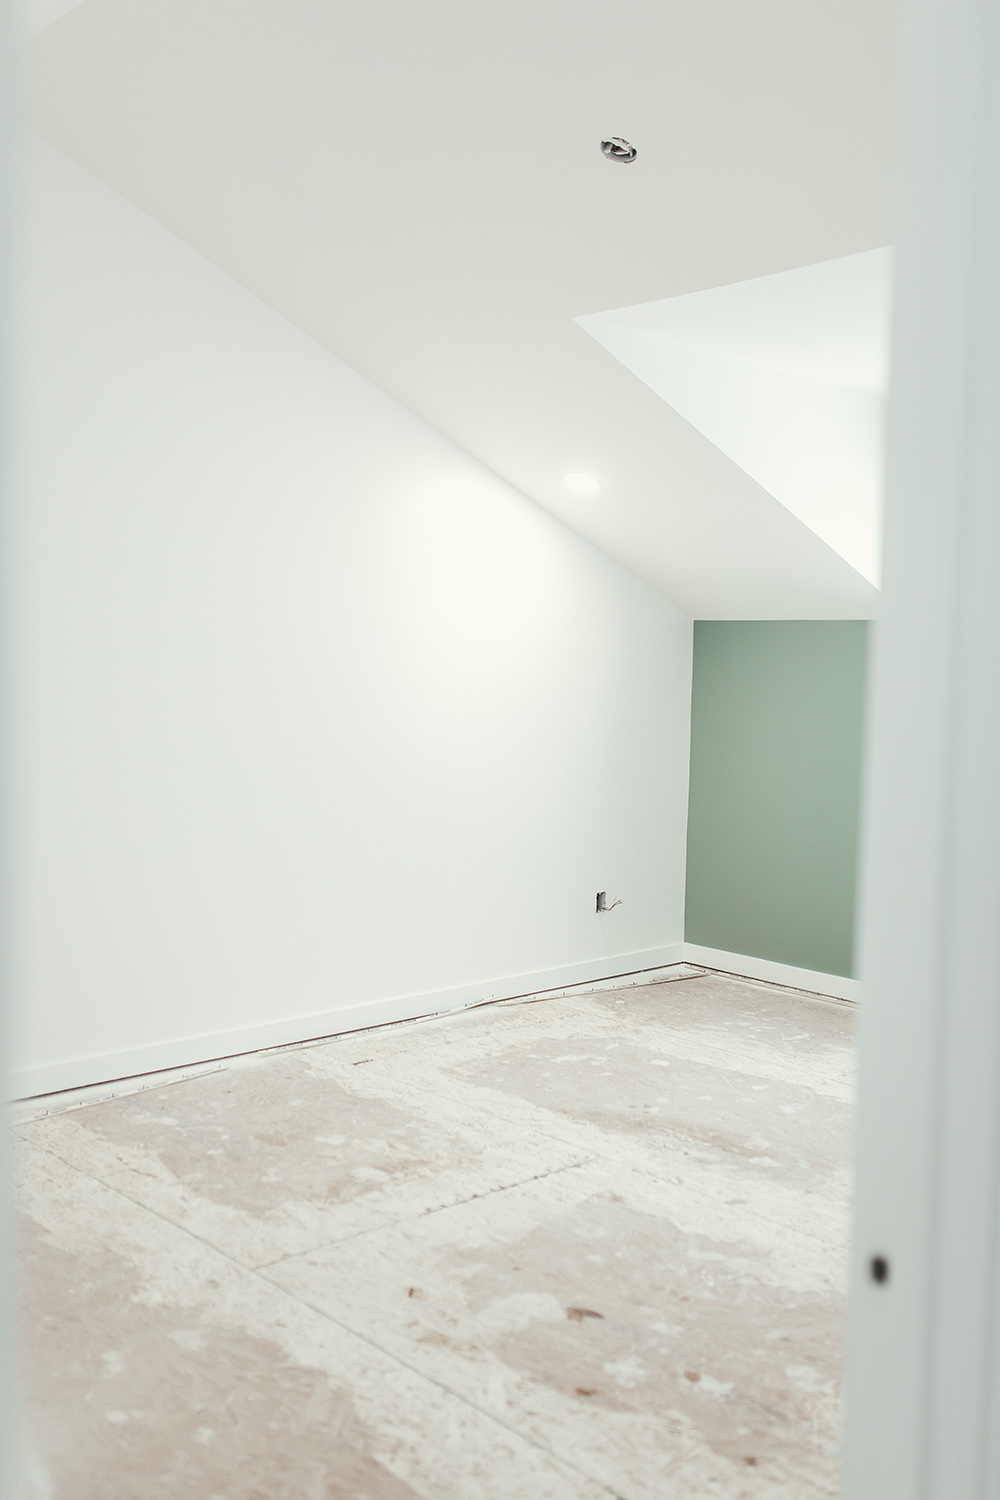 An empty room with no carpet